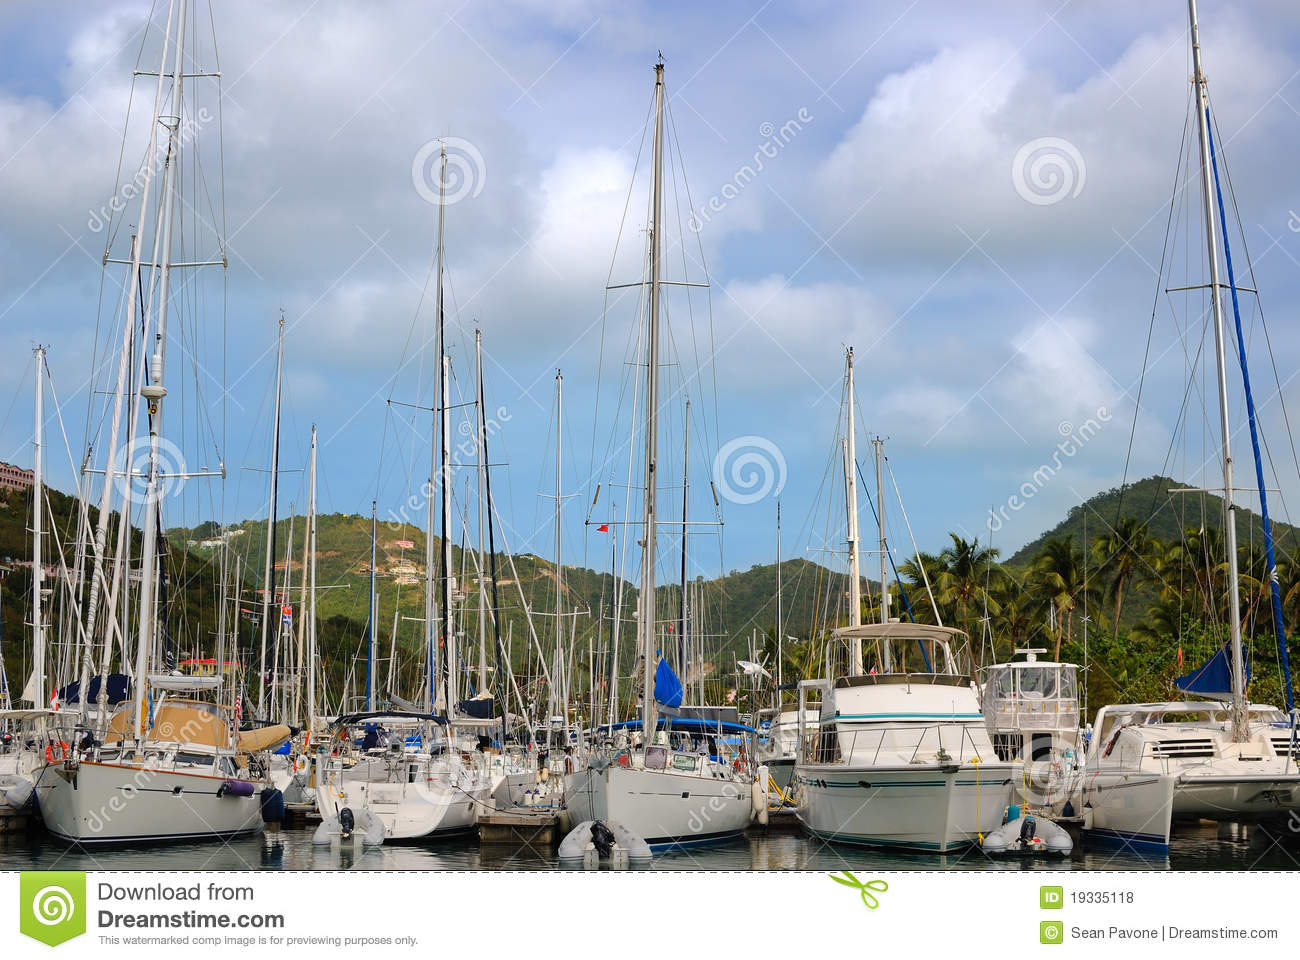 Sailboats In The Caribbean: Sailboats In The Caribbean Royalty Free Stock Photos